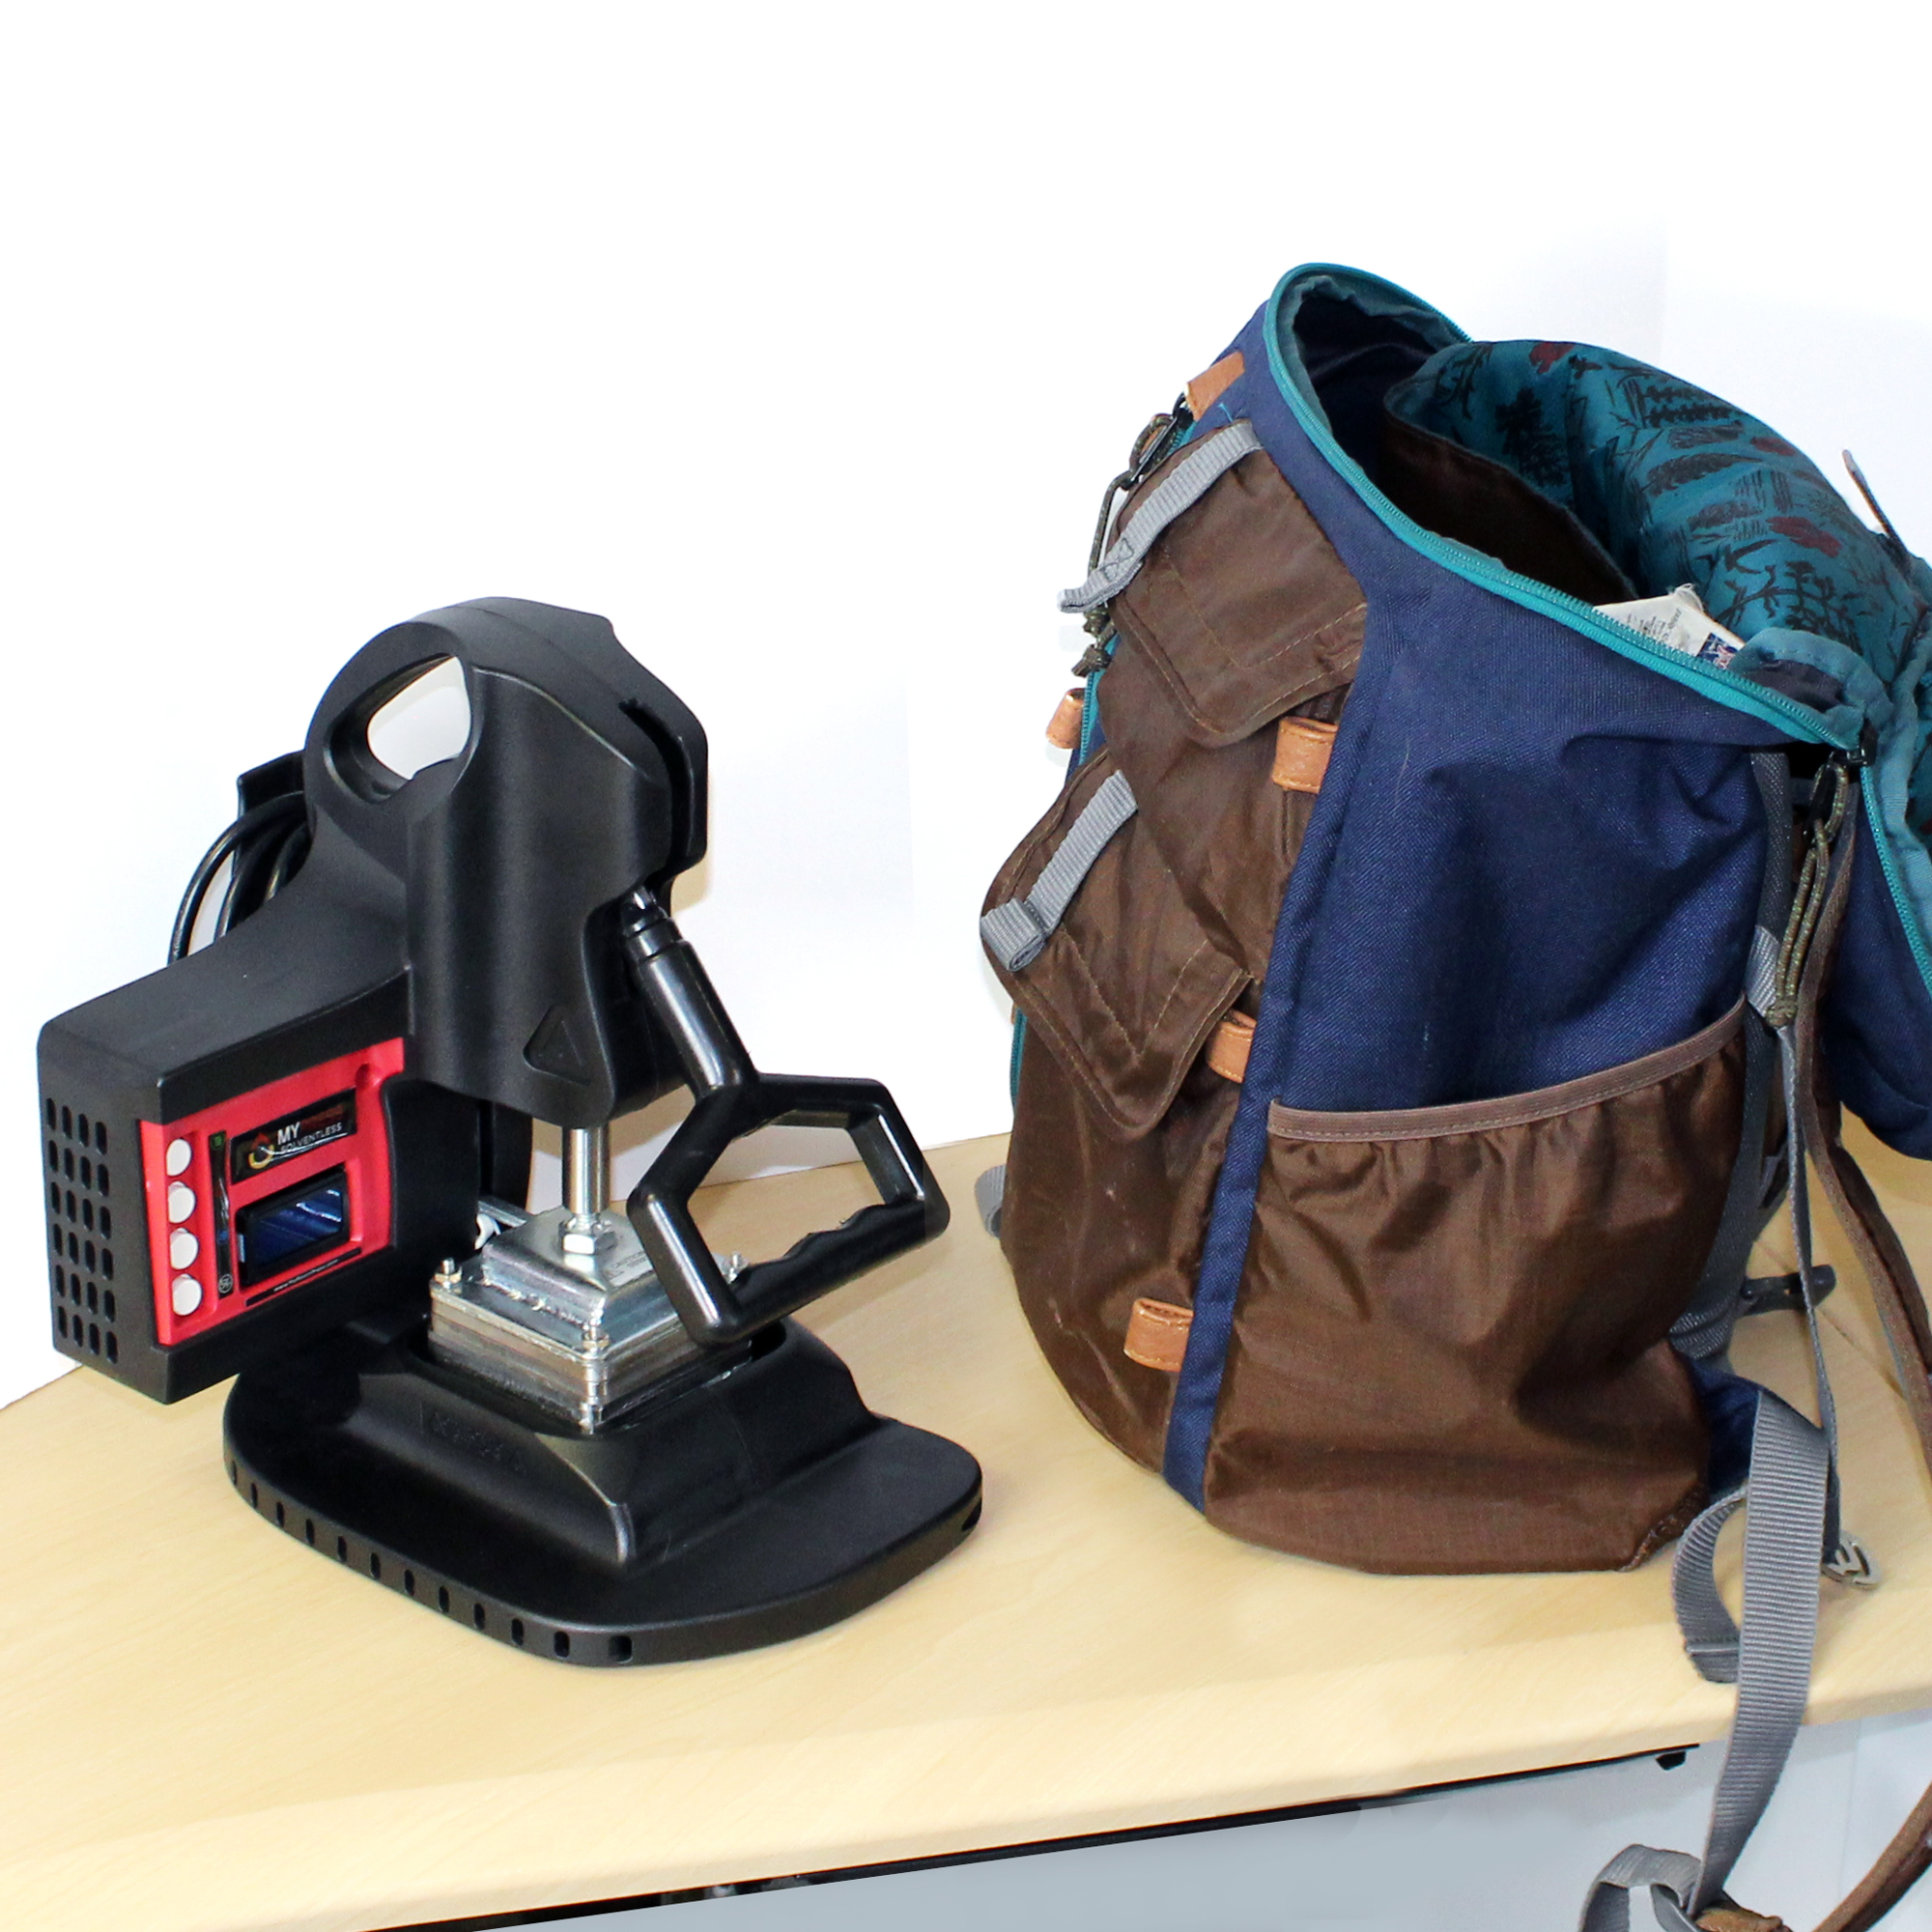 Rosin Press in a Backpack, portable, travel